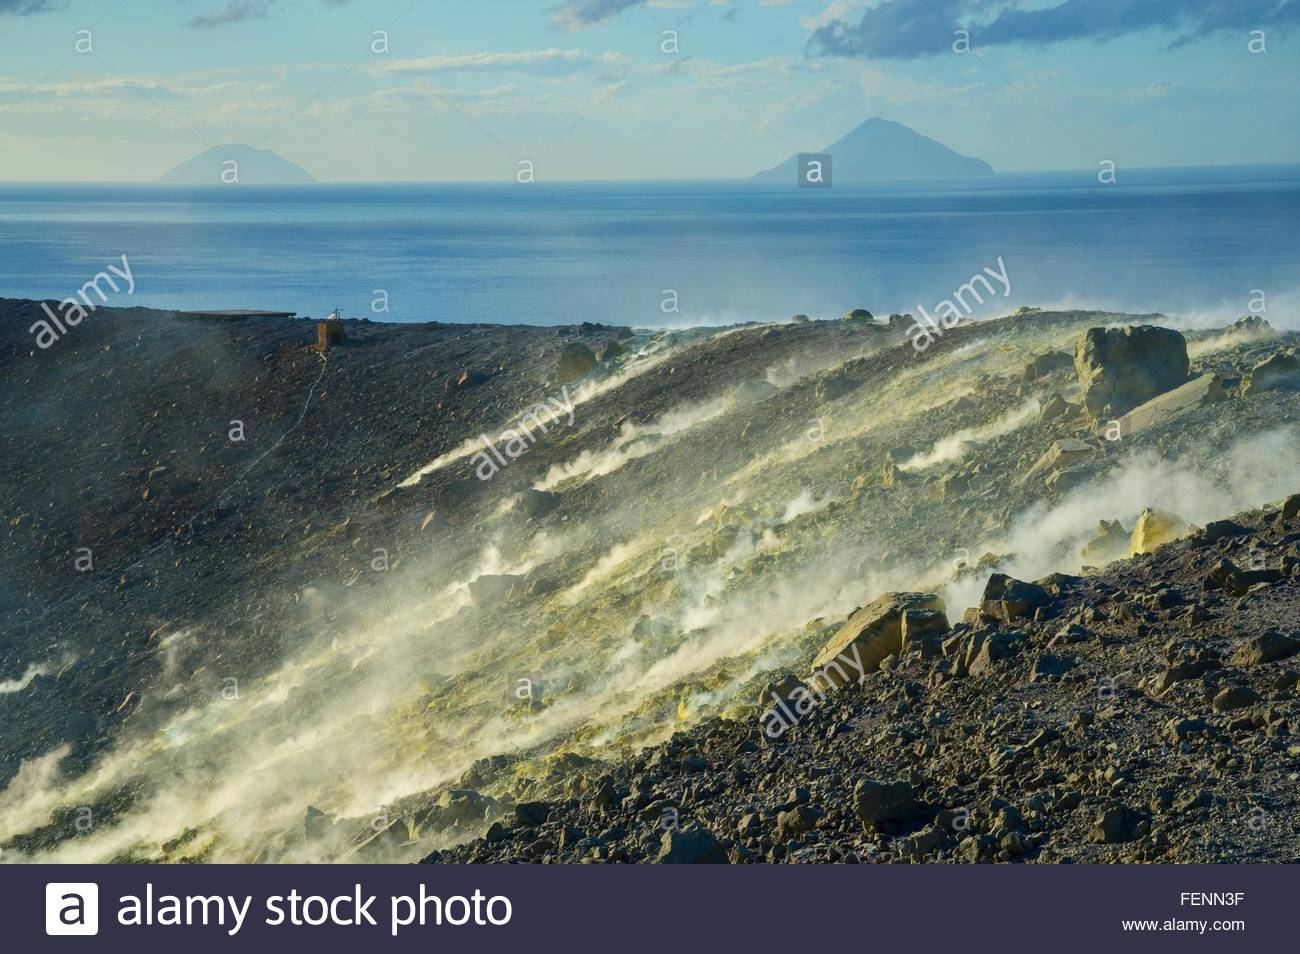 Sulphur and fumaroles smoke on Gran Cratere, Vulcano Island, Aeolian Islands, Sicily, Italy - Stock Image